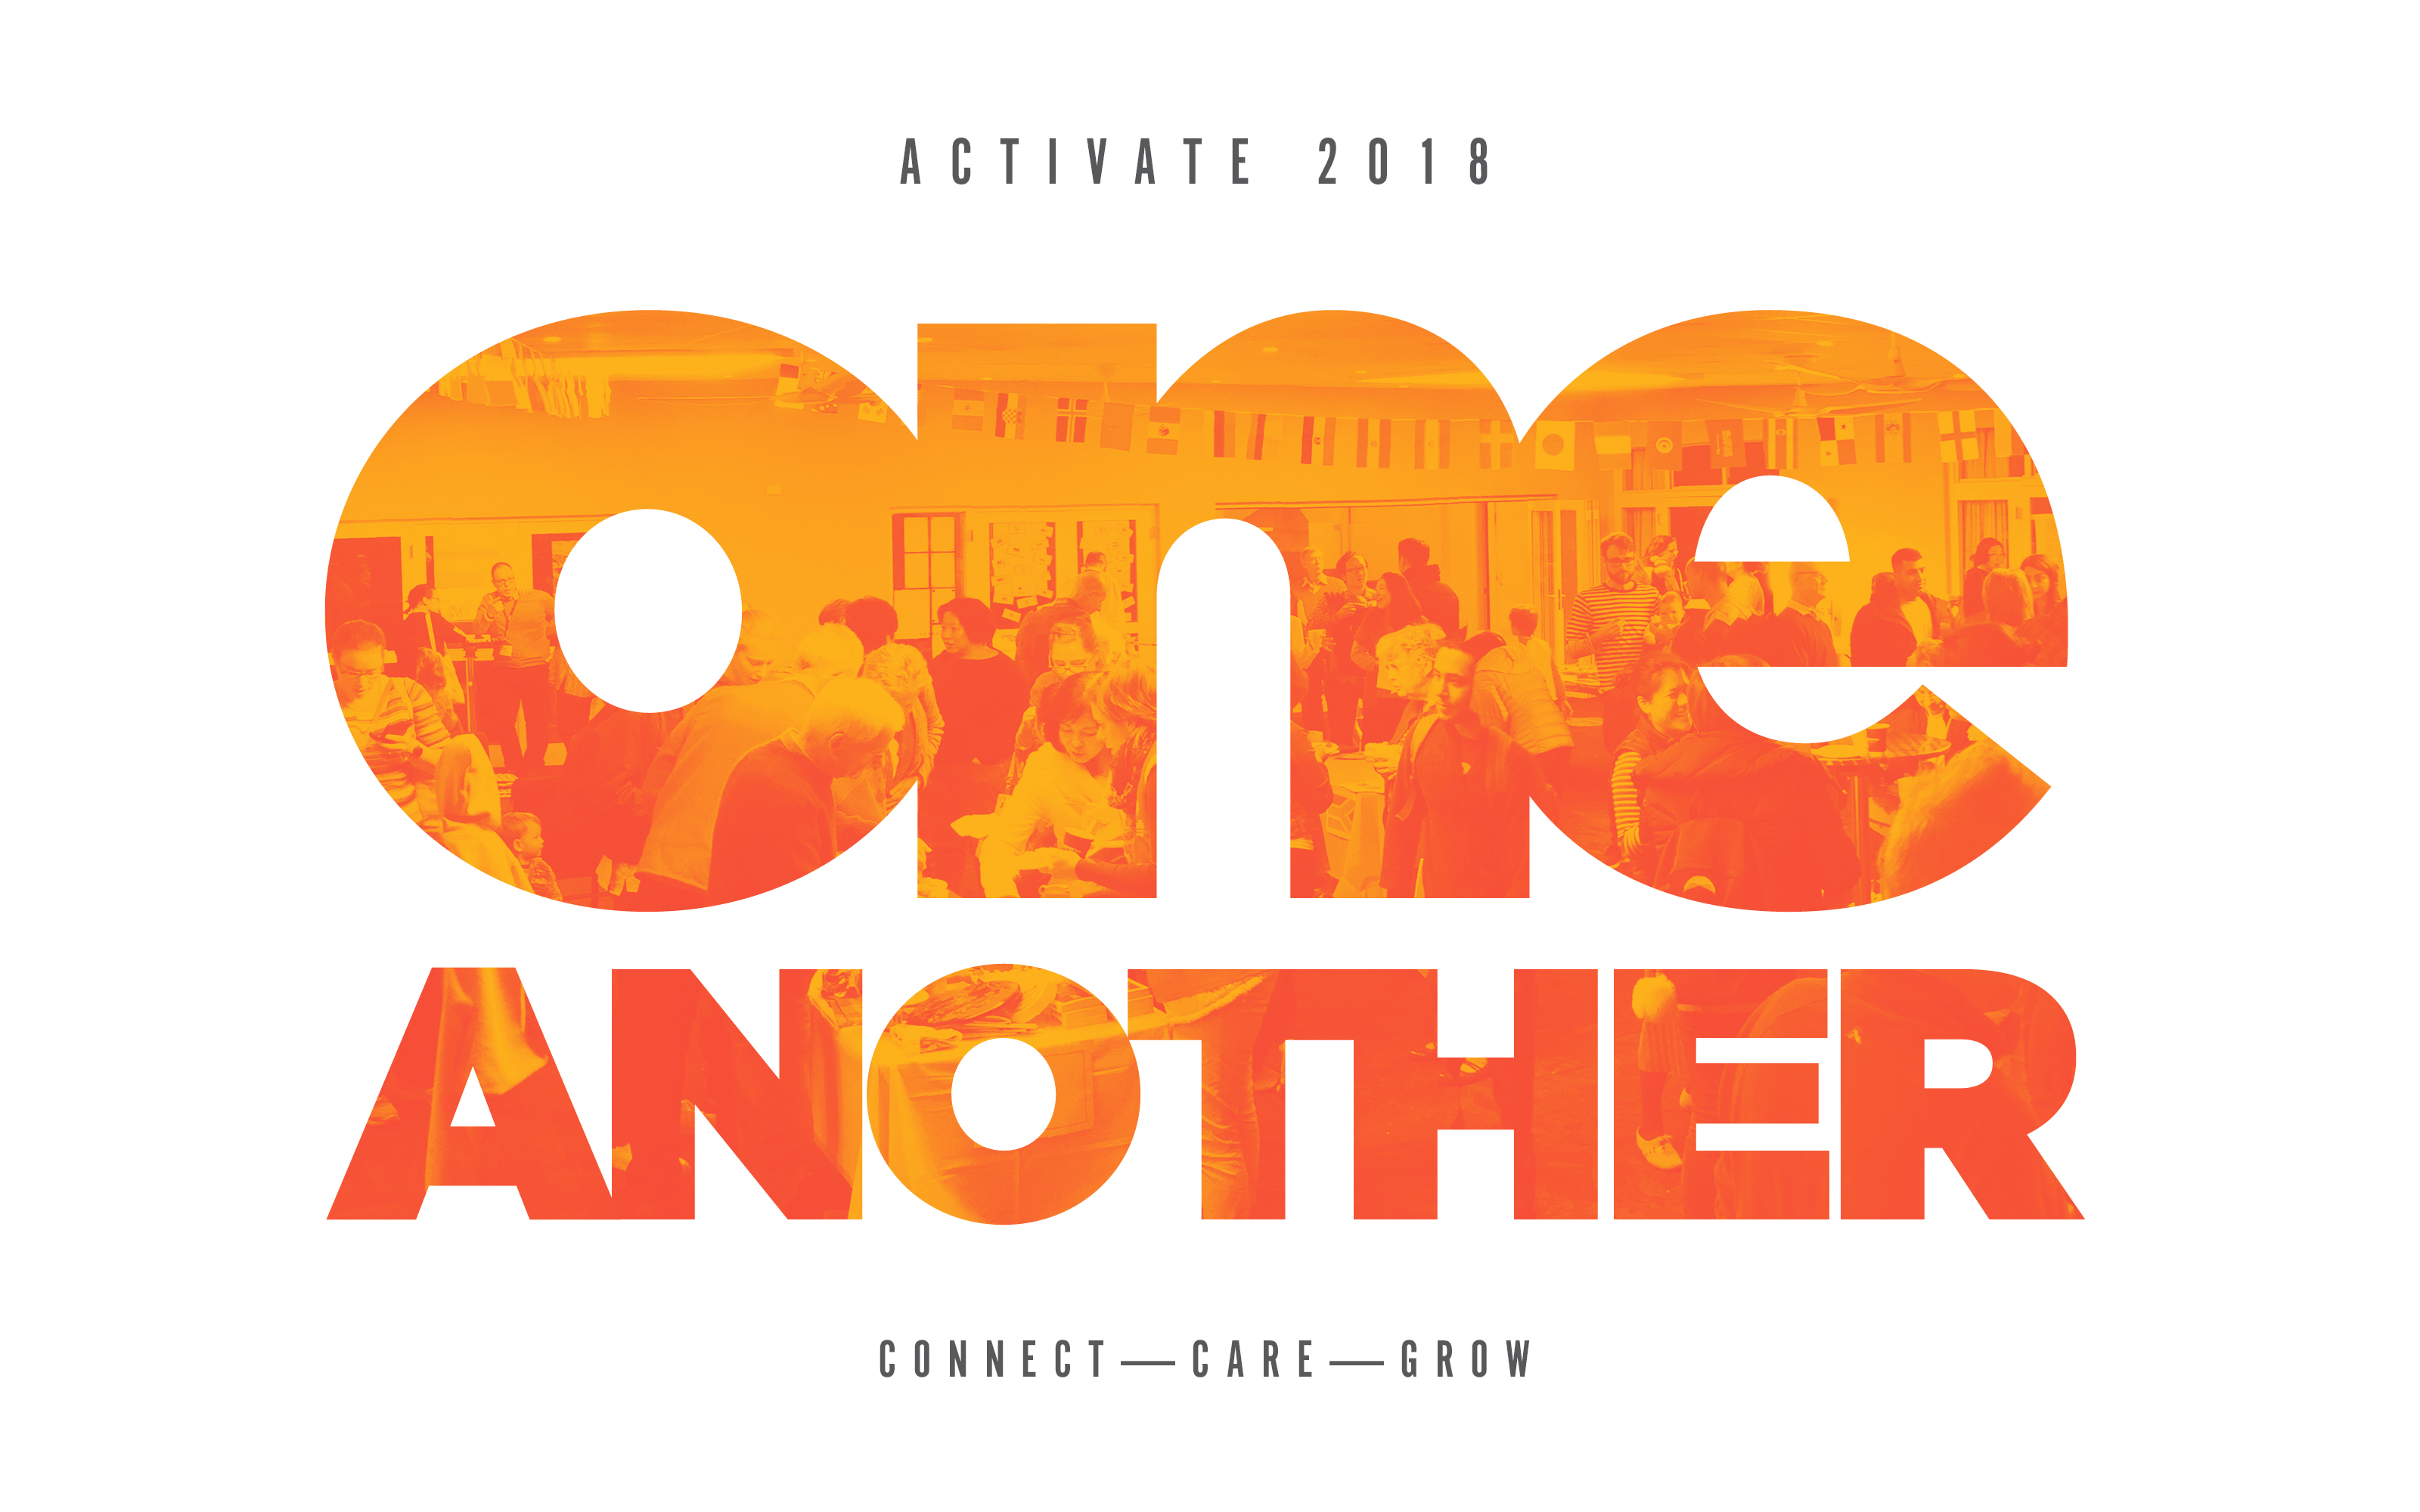 ONE ANOTHER - BUILD UP One Another